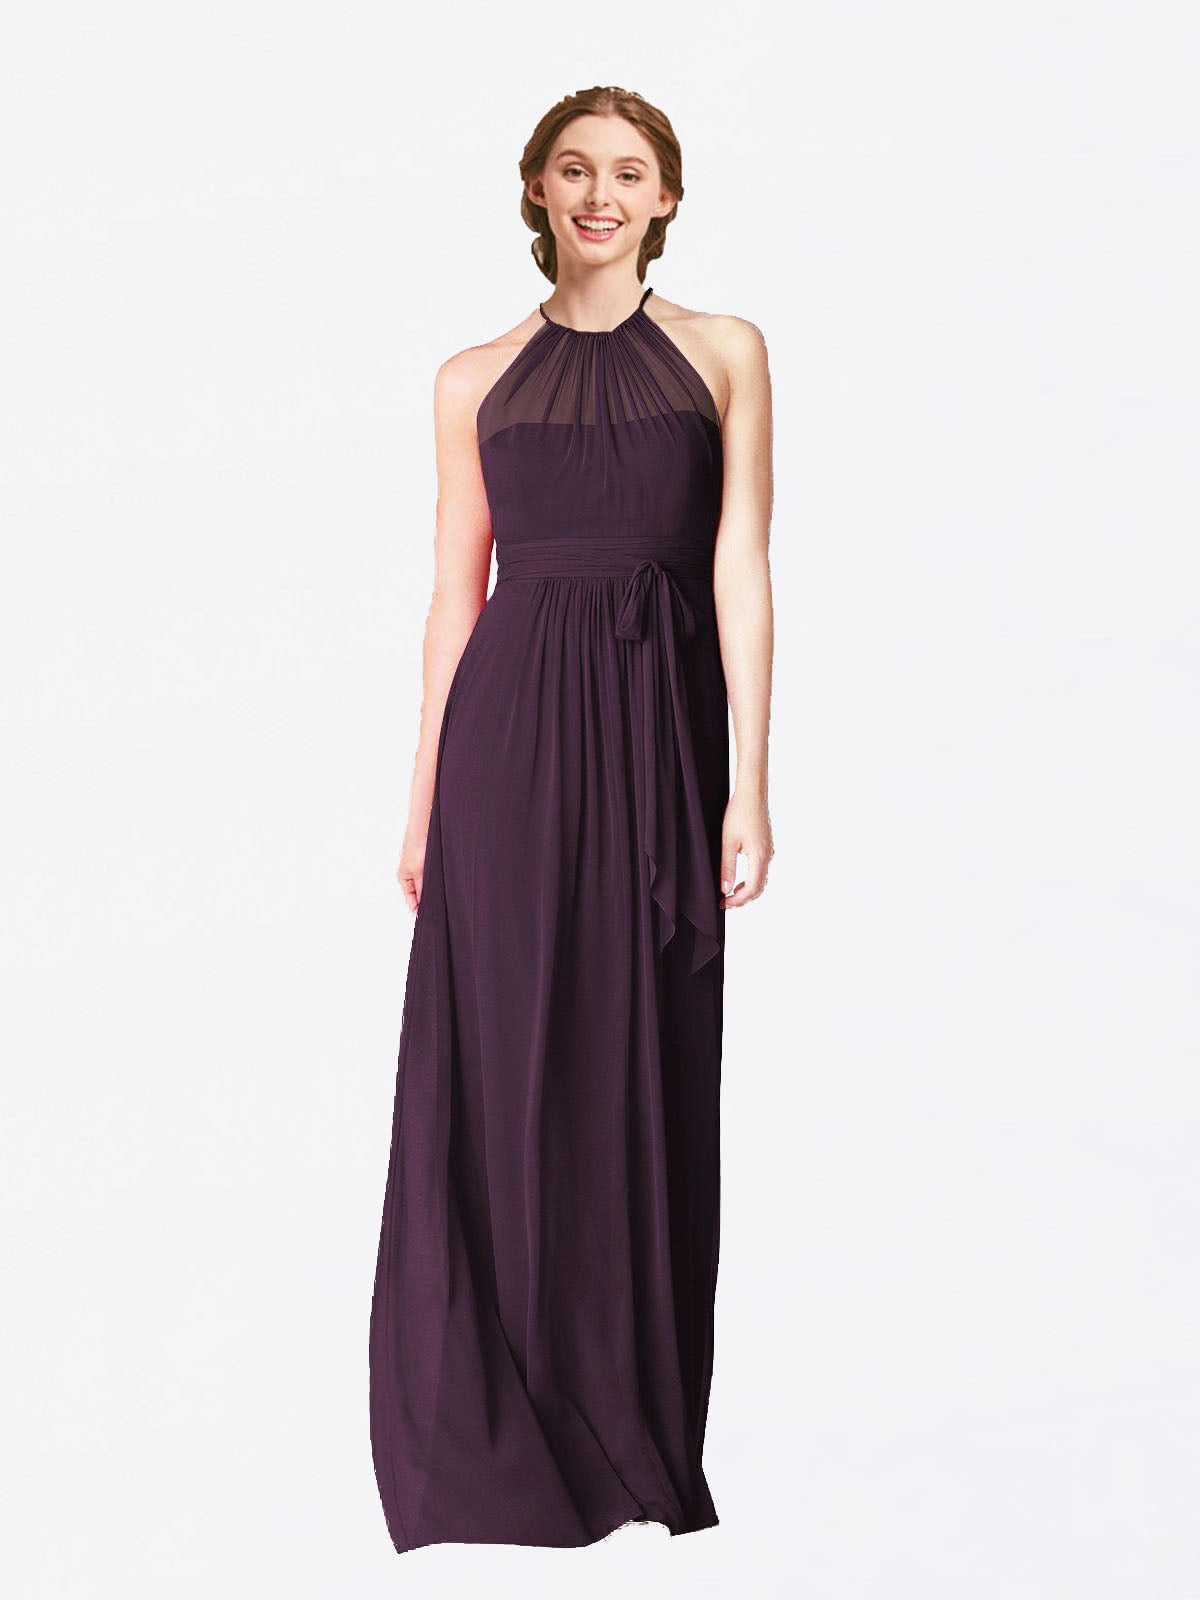 Long A-Line Halter Sleeveless Grape Chiffon Bridesmaid Dress Laura